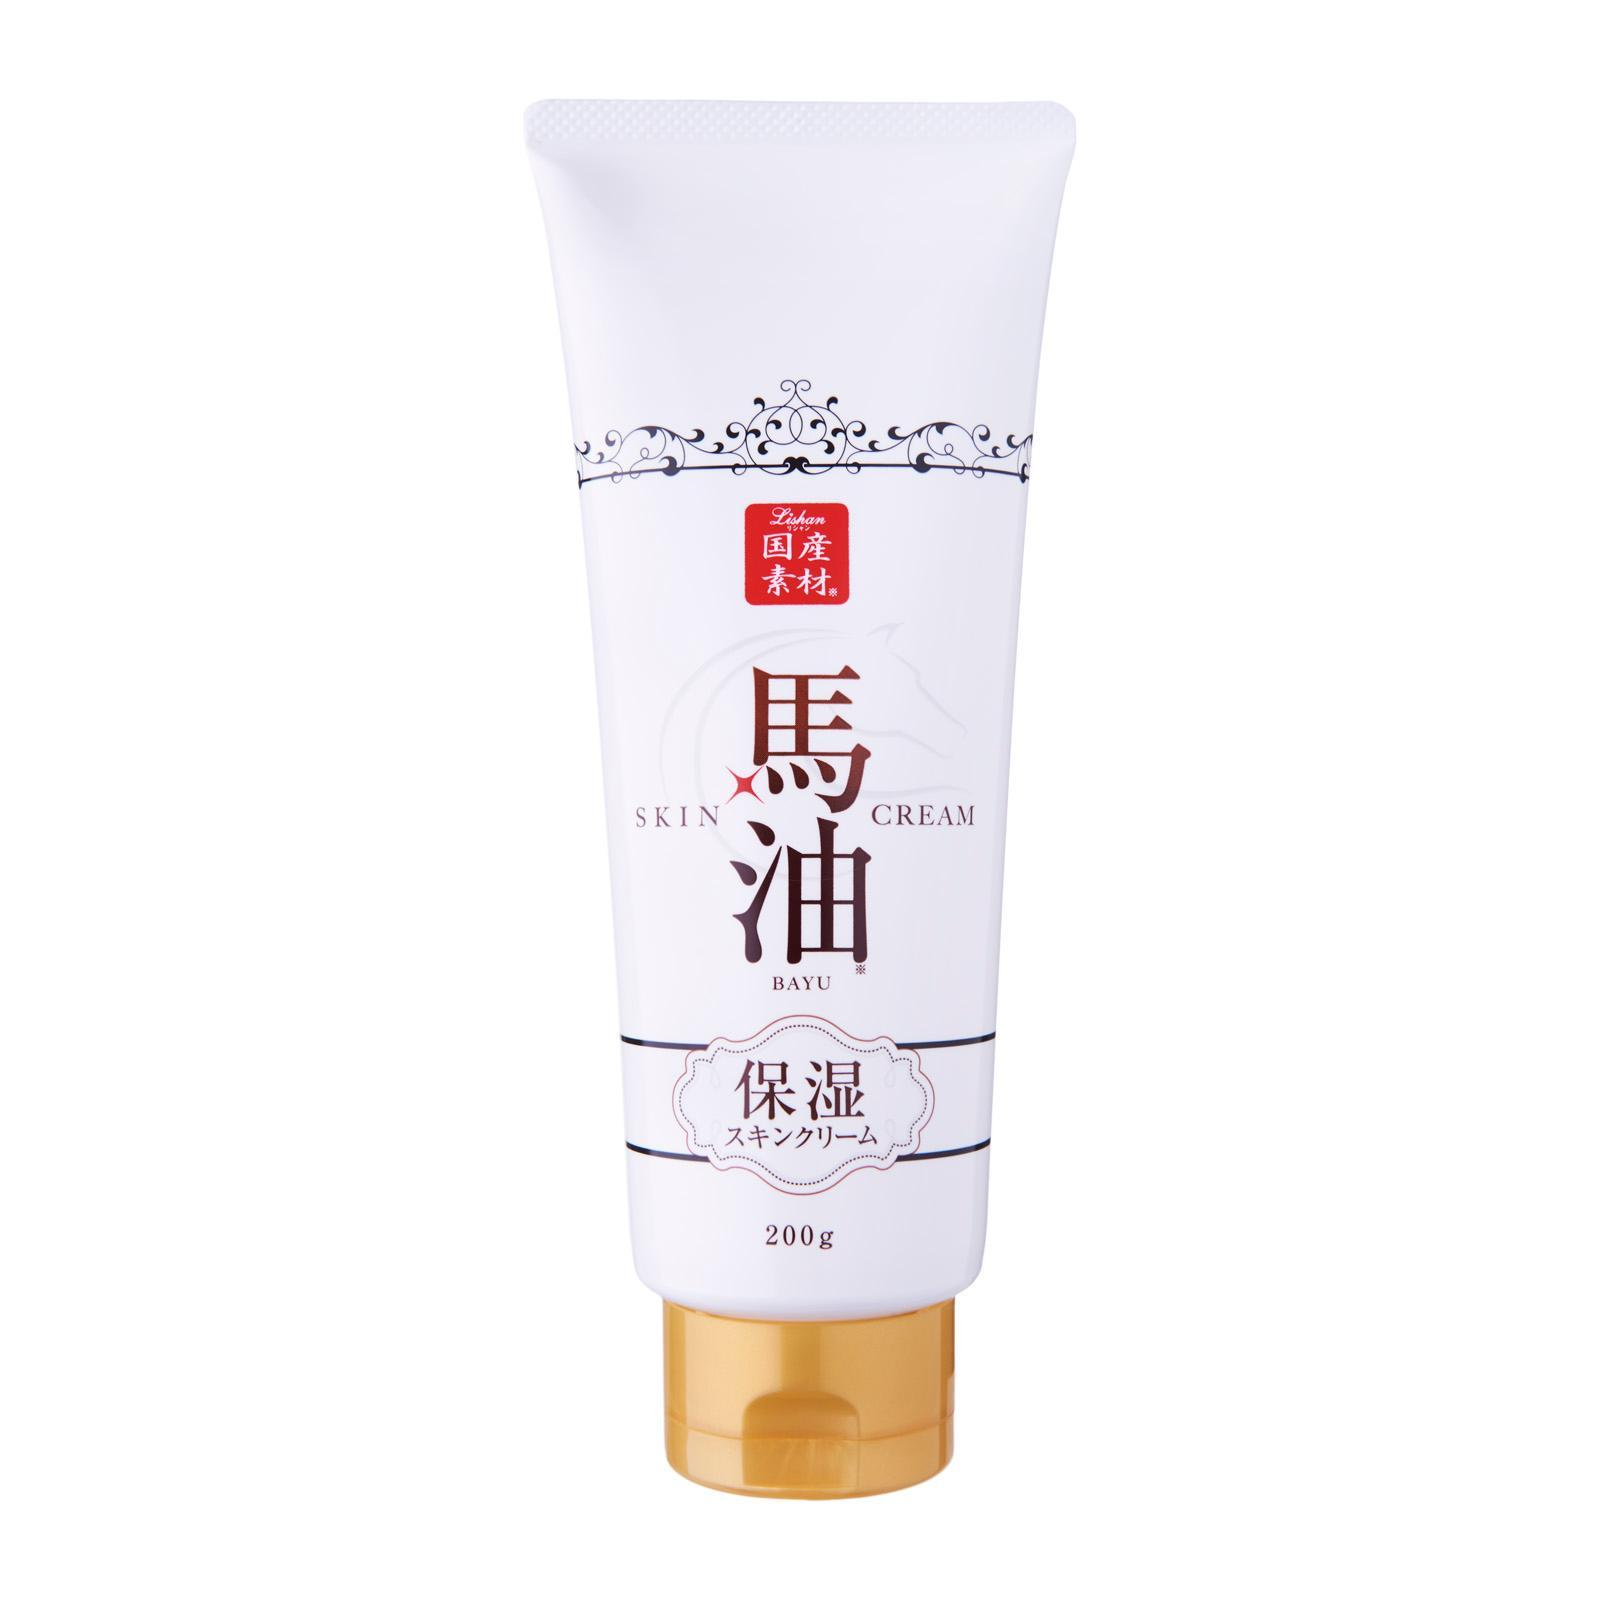 Lishan Horse Oil Skin Cream